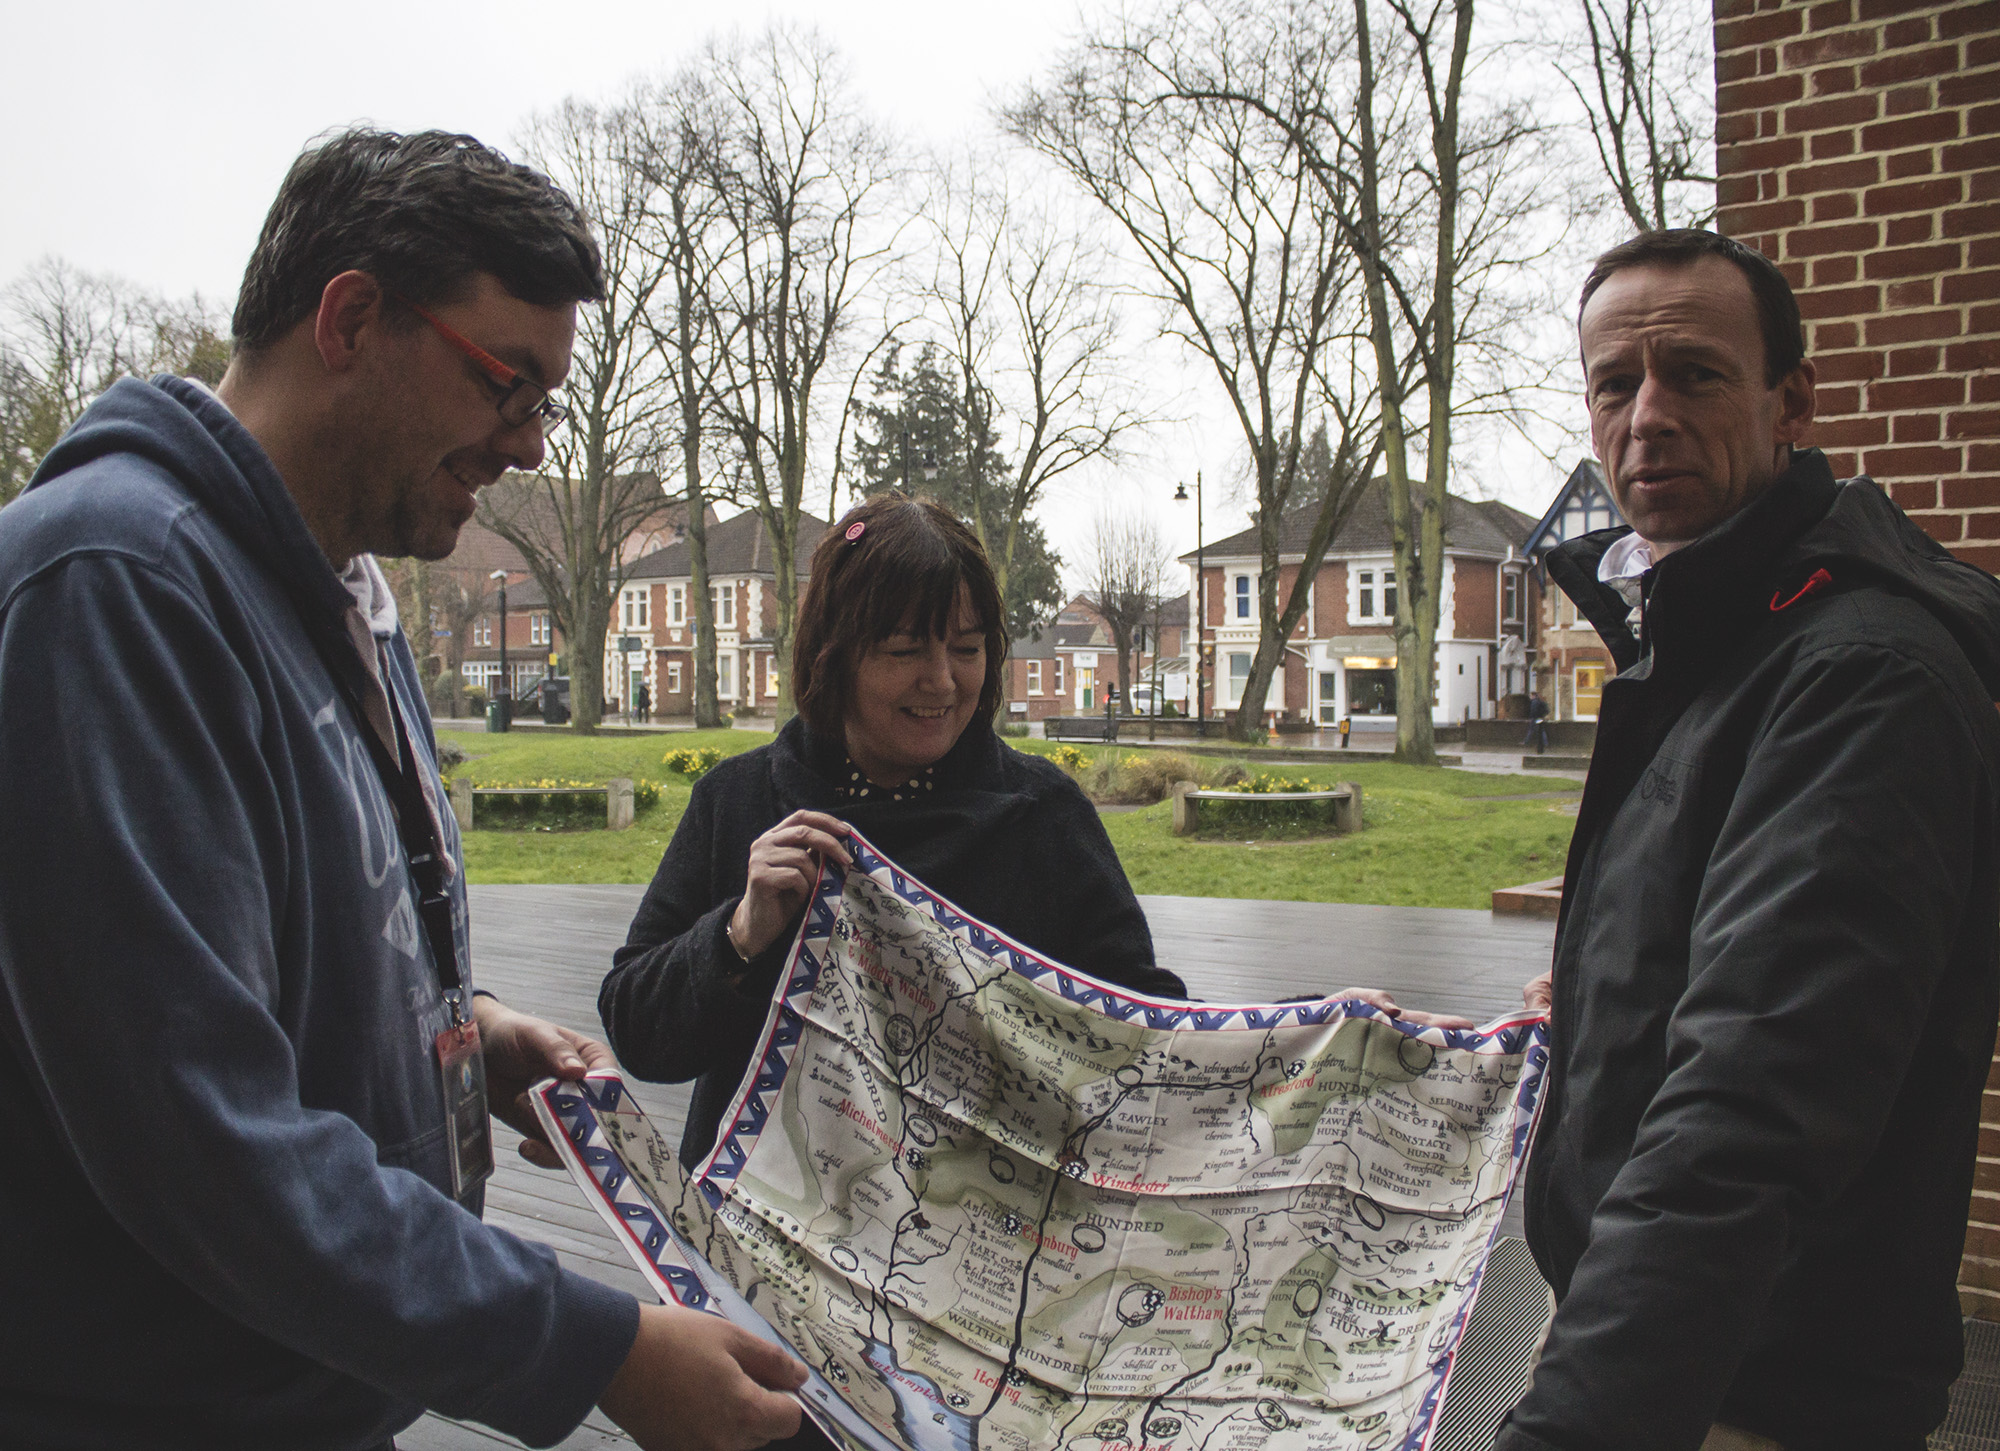 Commemorative Interactive Map To Be Launched At Hamble Festival